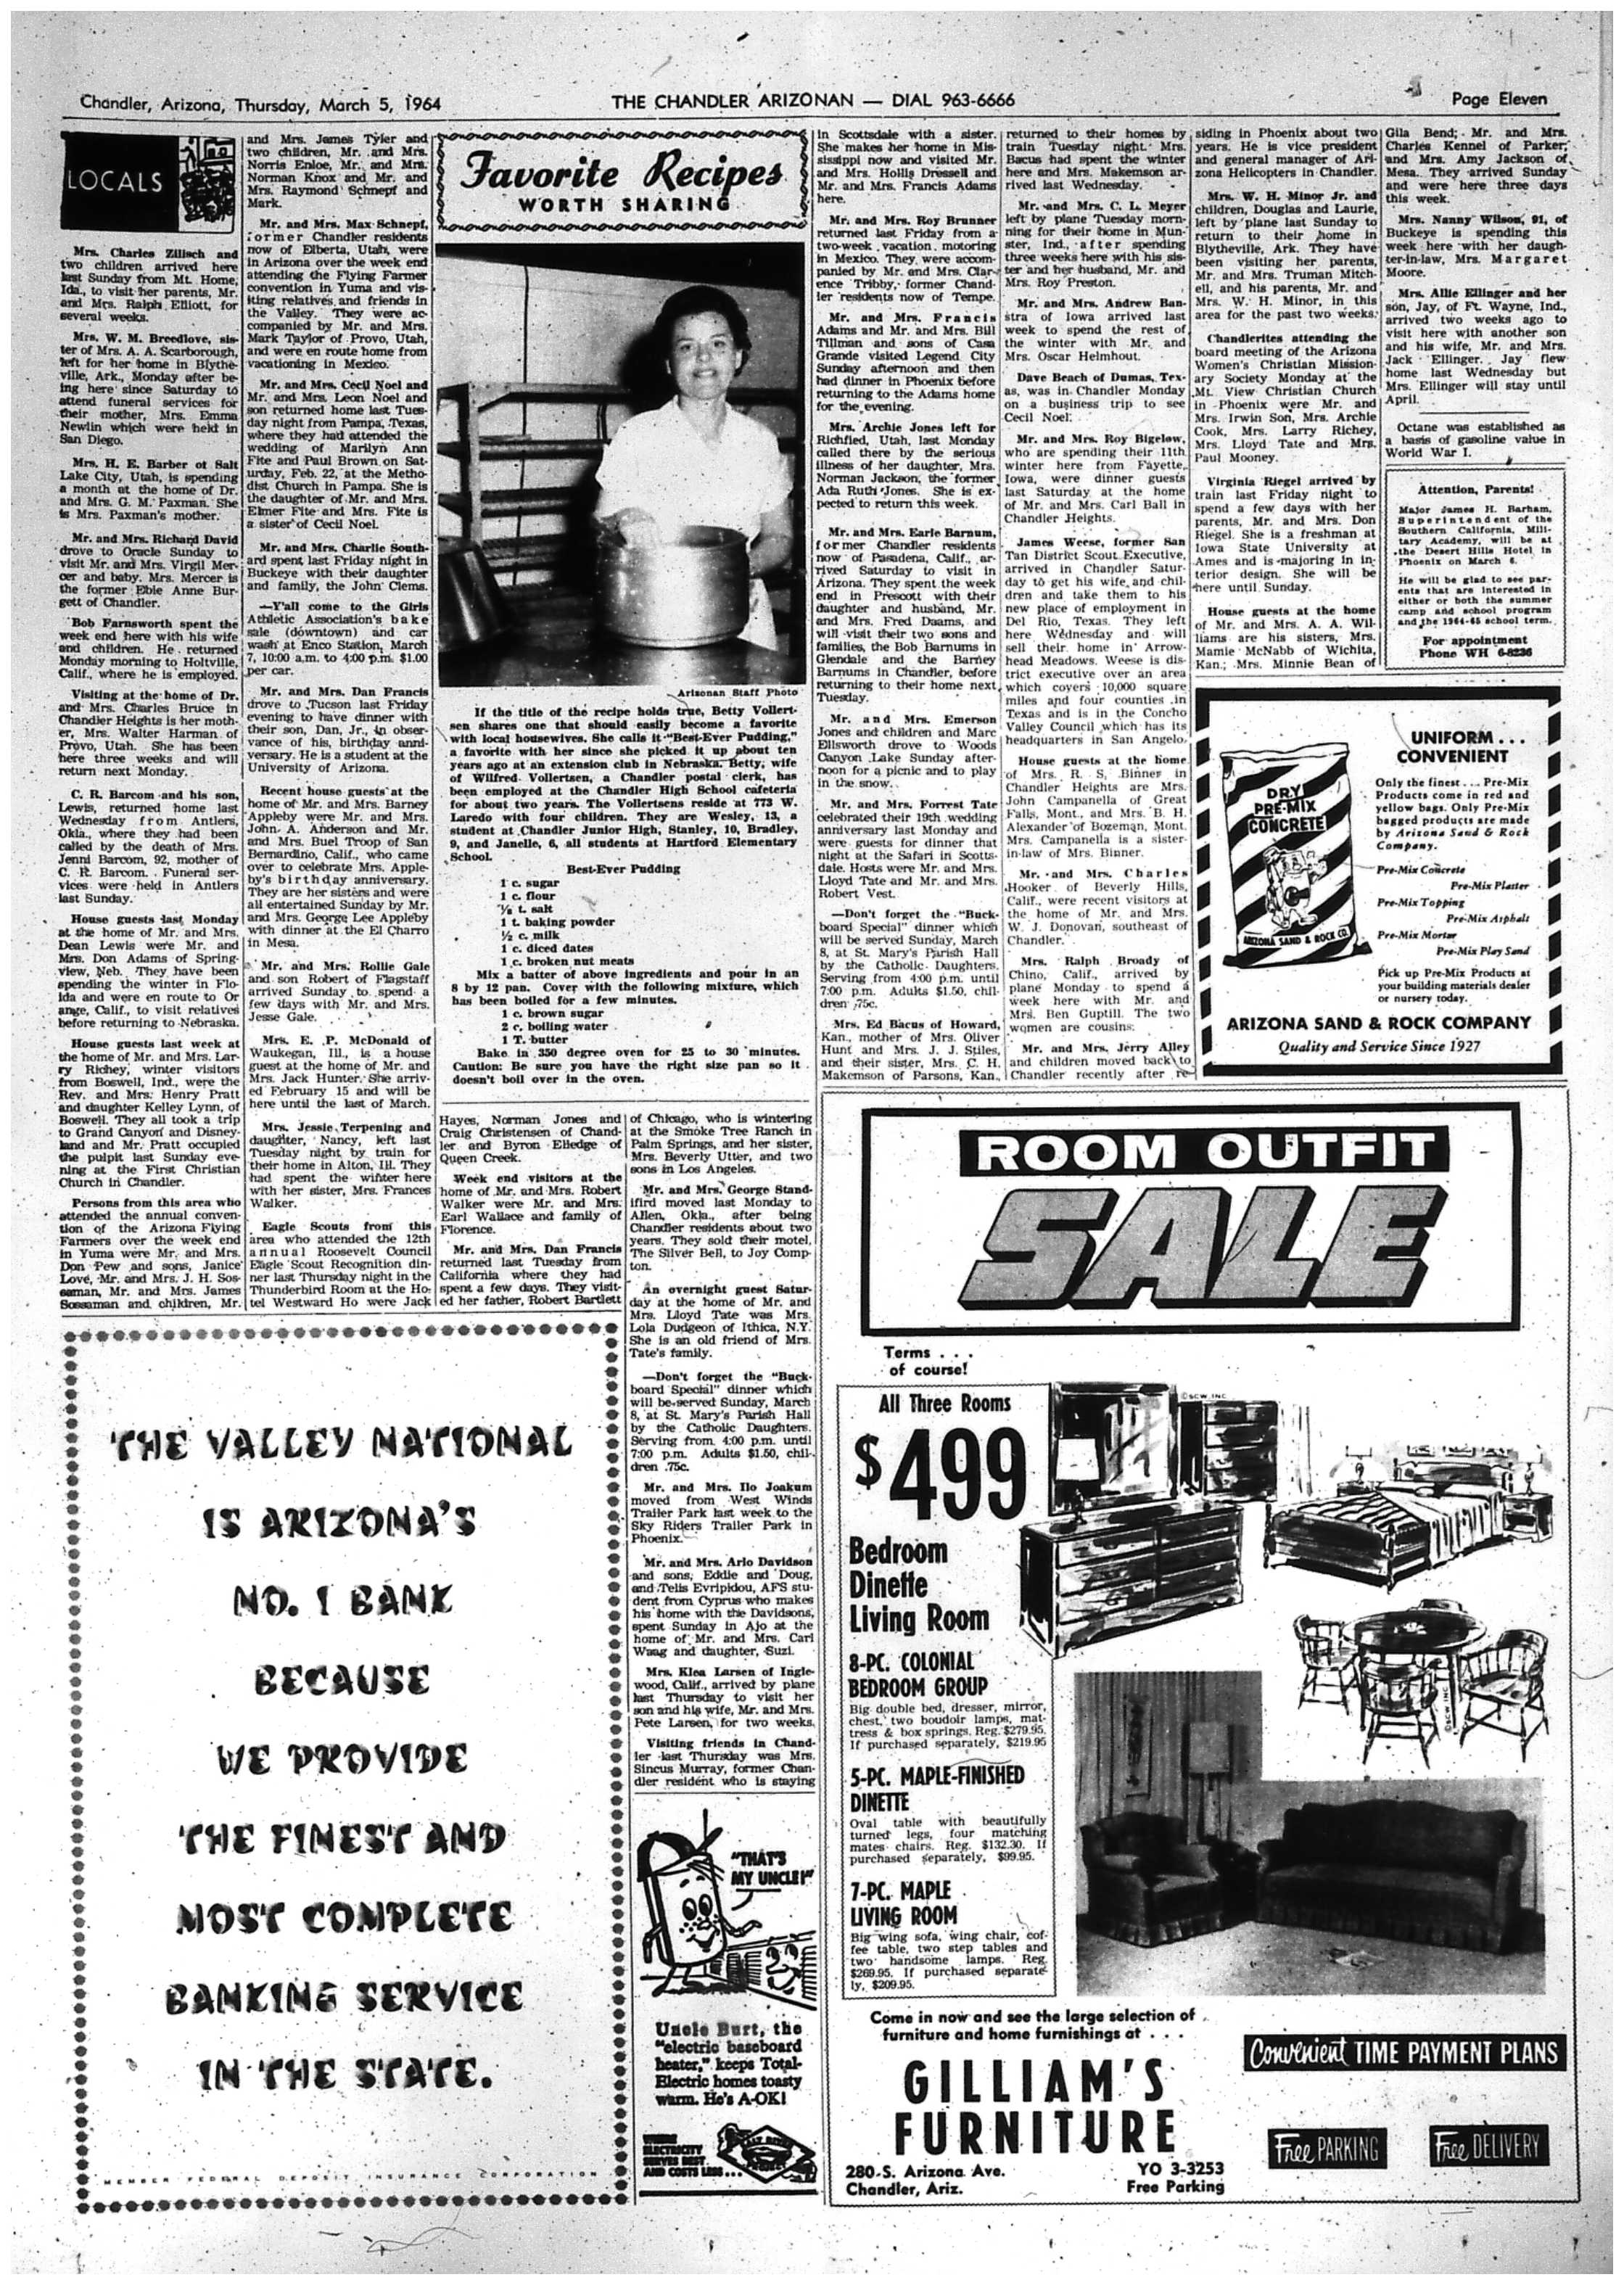 03-05-1964 - Page 11 .jpg